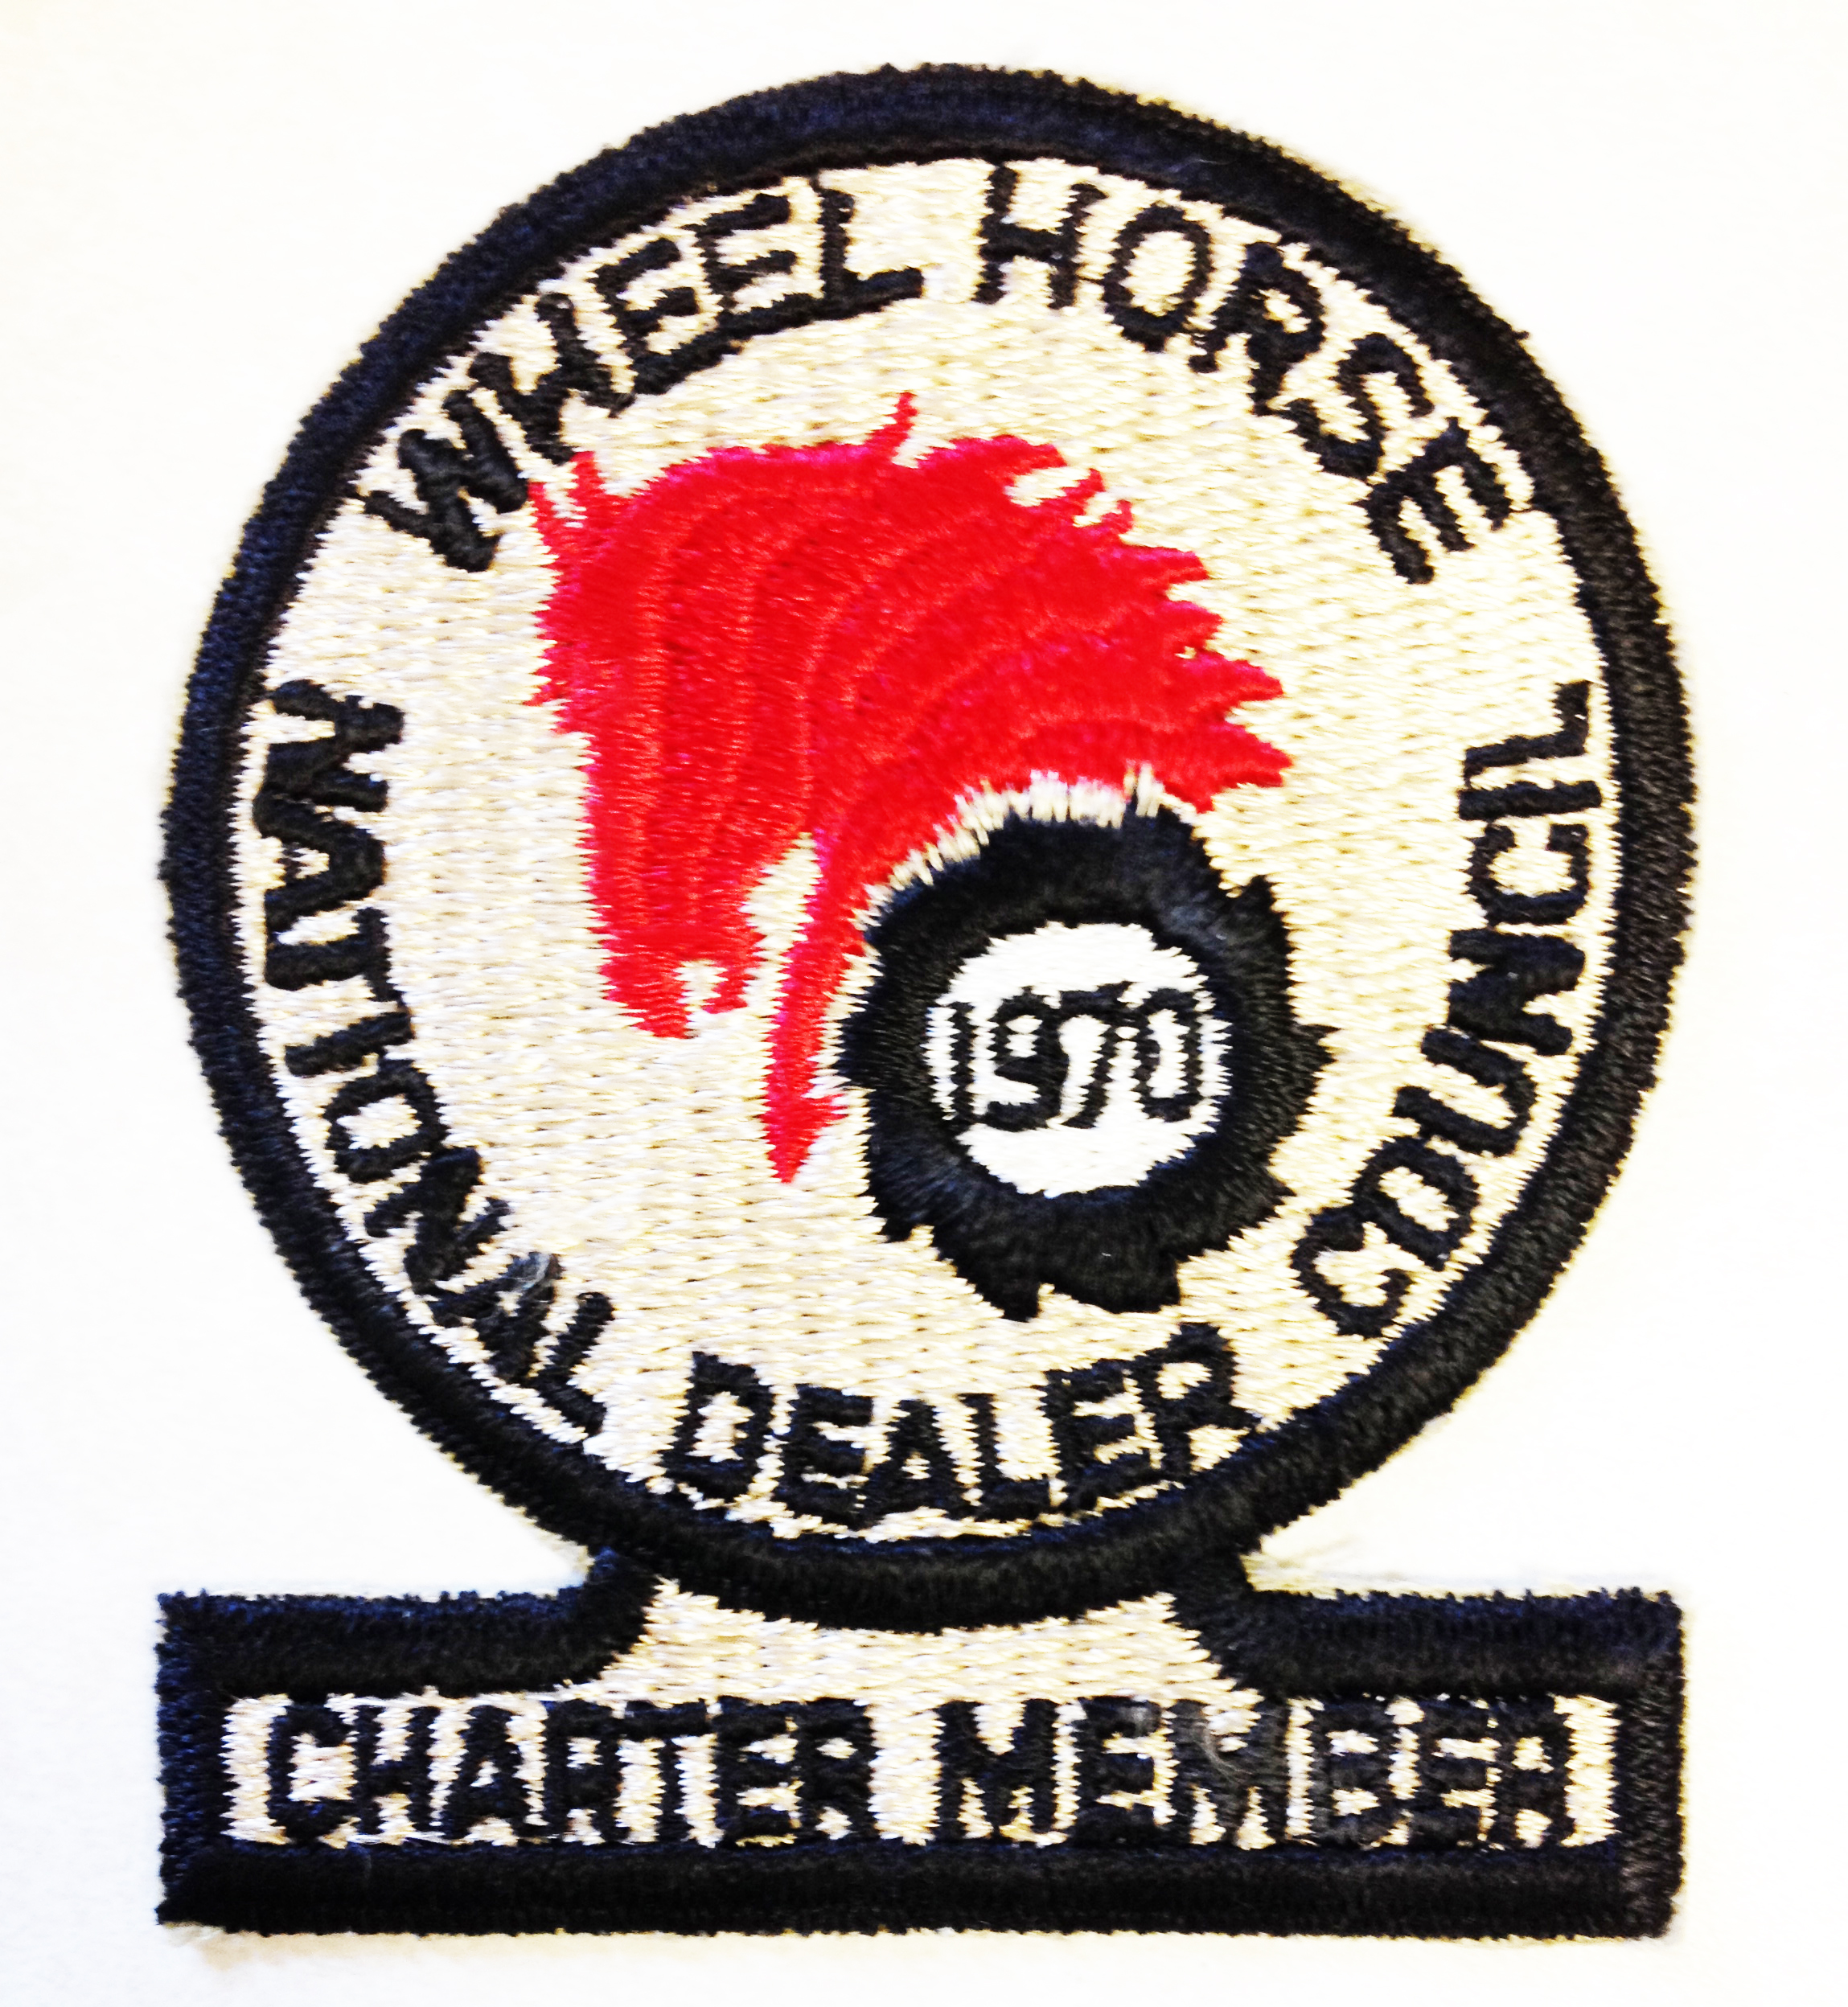 Wheel Horse selected 10 dealer from across the U.S. to discuss product and corporate management. Humphreys' Wheel Horse was one of those 10, and stayed on the board until after Toro purchased Wheel Horse.